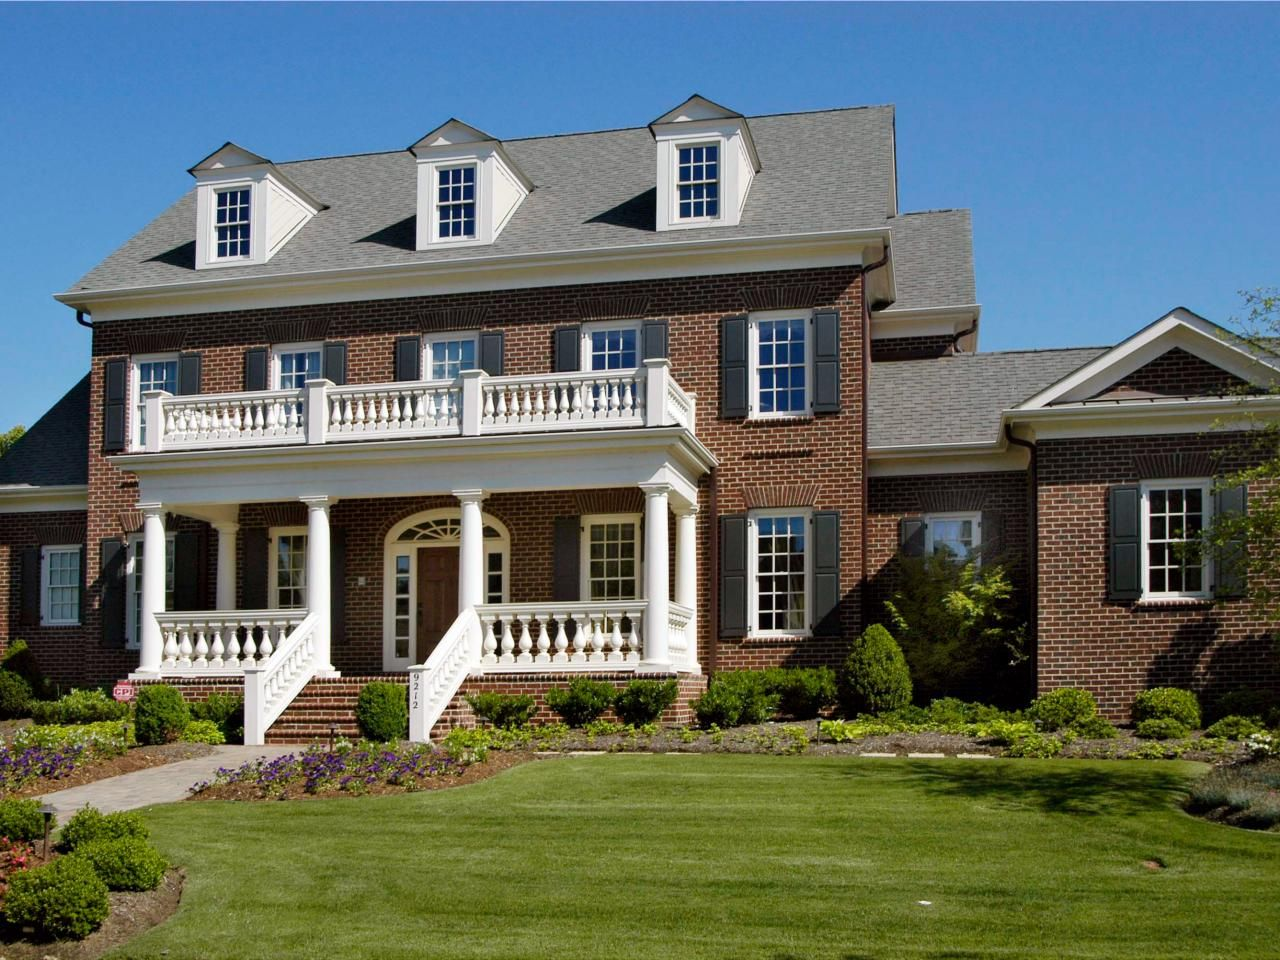 Colonial Brick House With Black Shutters House With Balcony Dream House Exterior Building Plans House